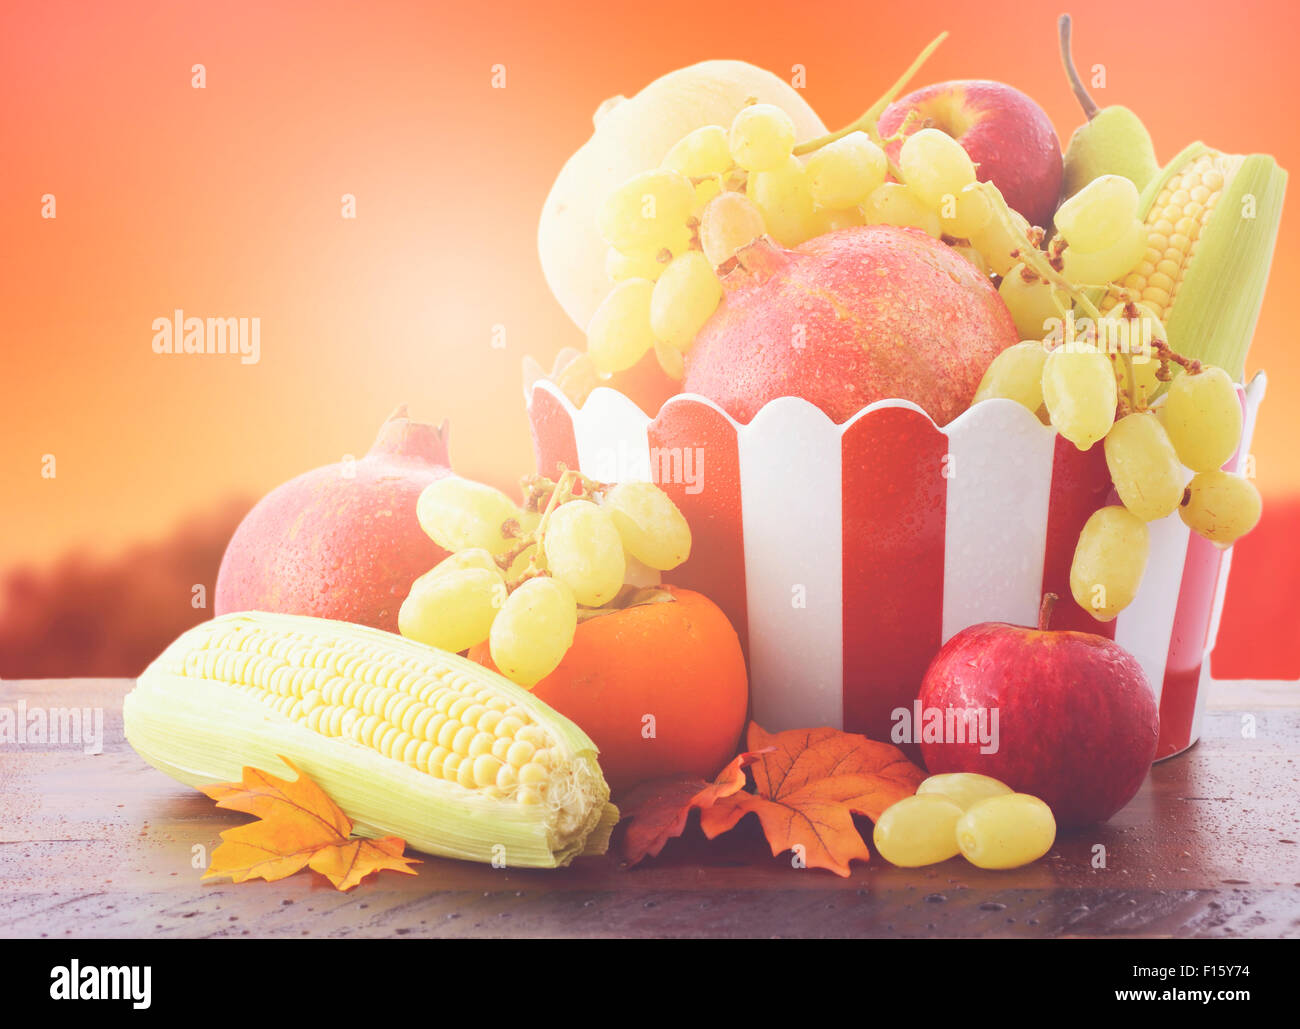 Bowl of Autumn fruit and vegetables on vintage wood table with Autumn sunset background, with added filters and - Stock Image